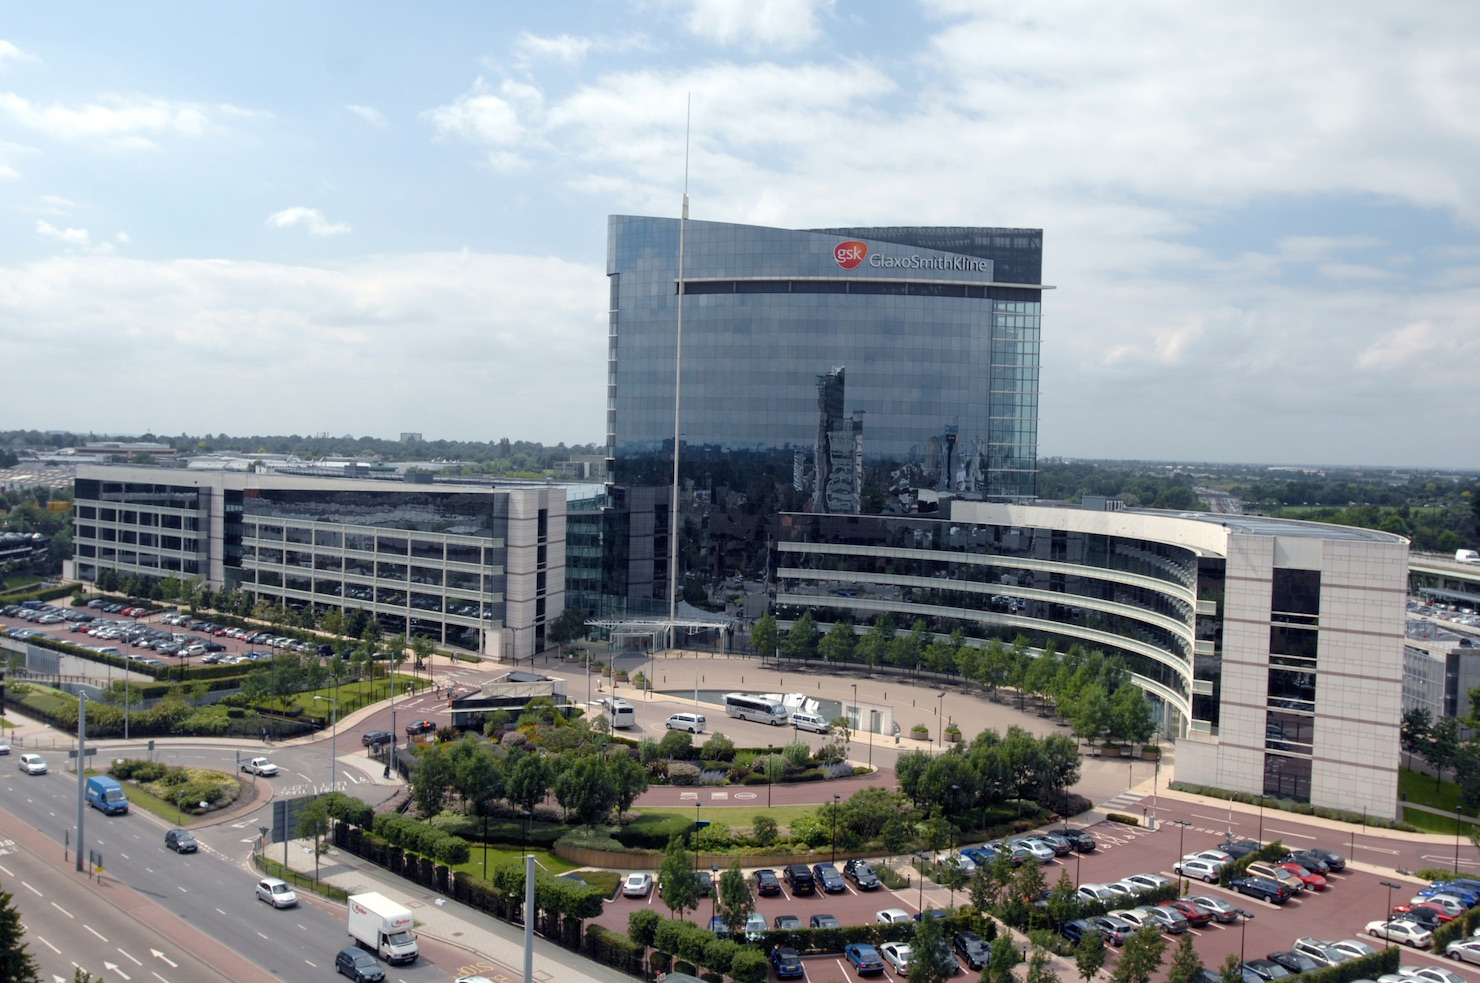 GSK headquarters 1480x near London